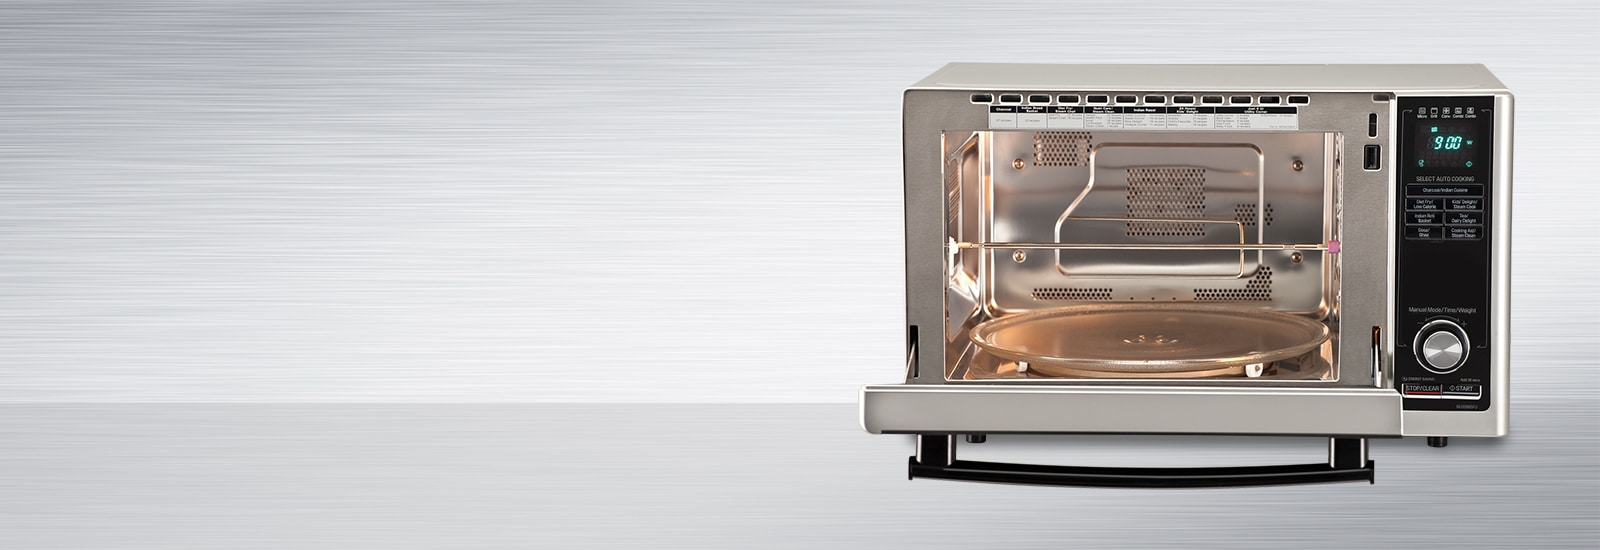 LG Stainless Steel Cavity Microwave Oven